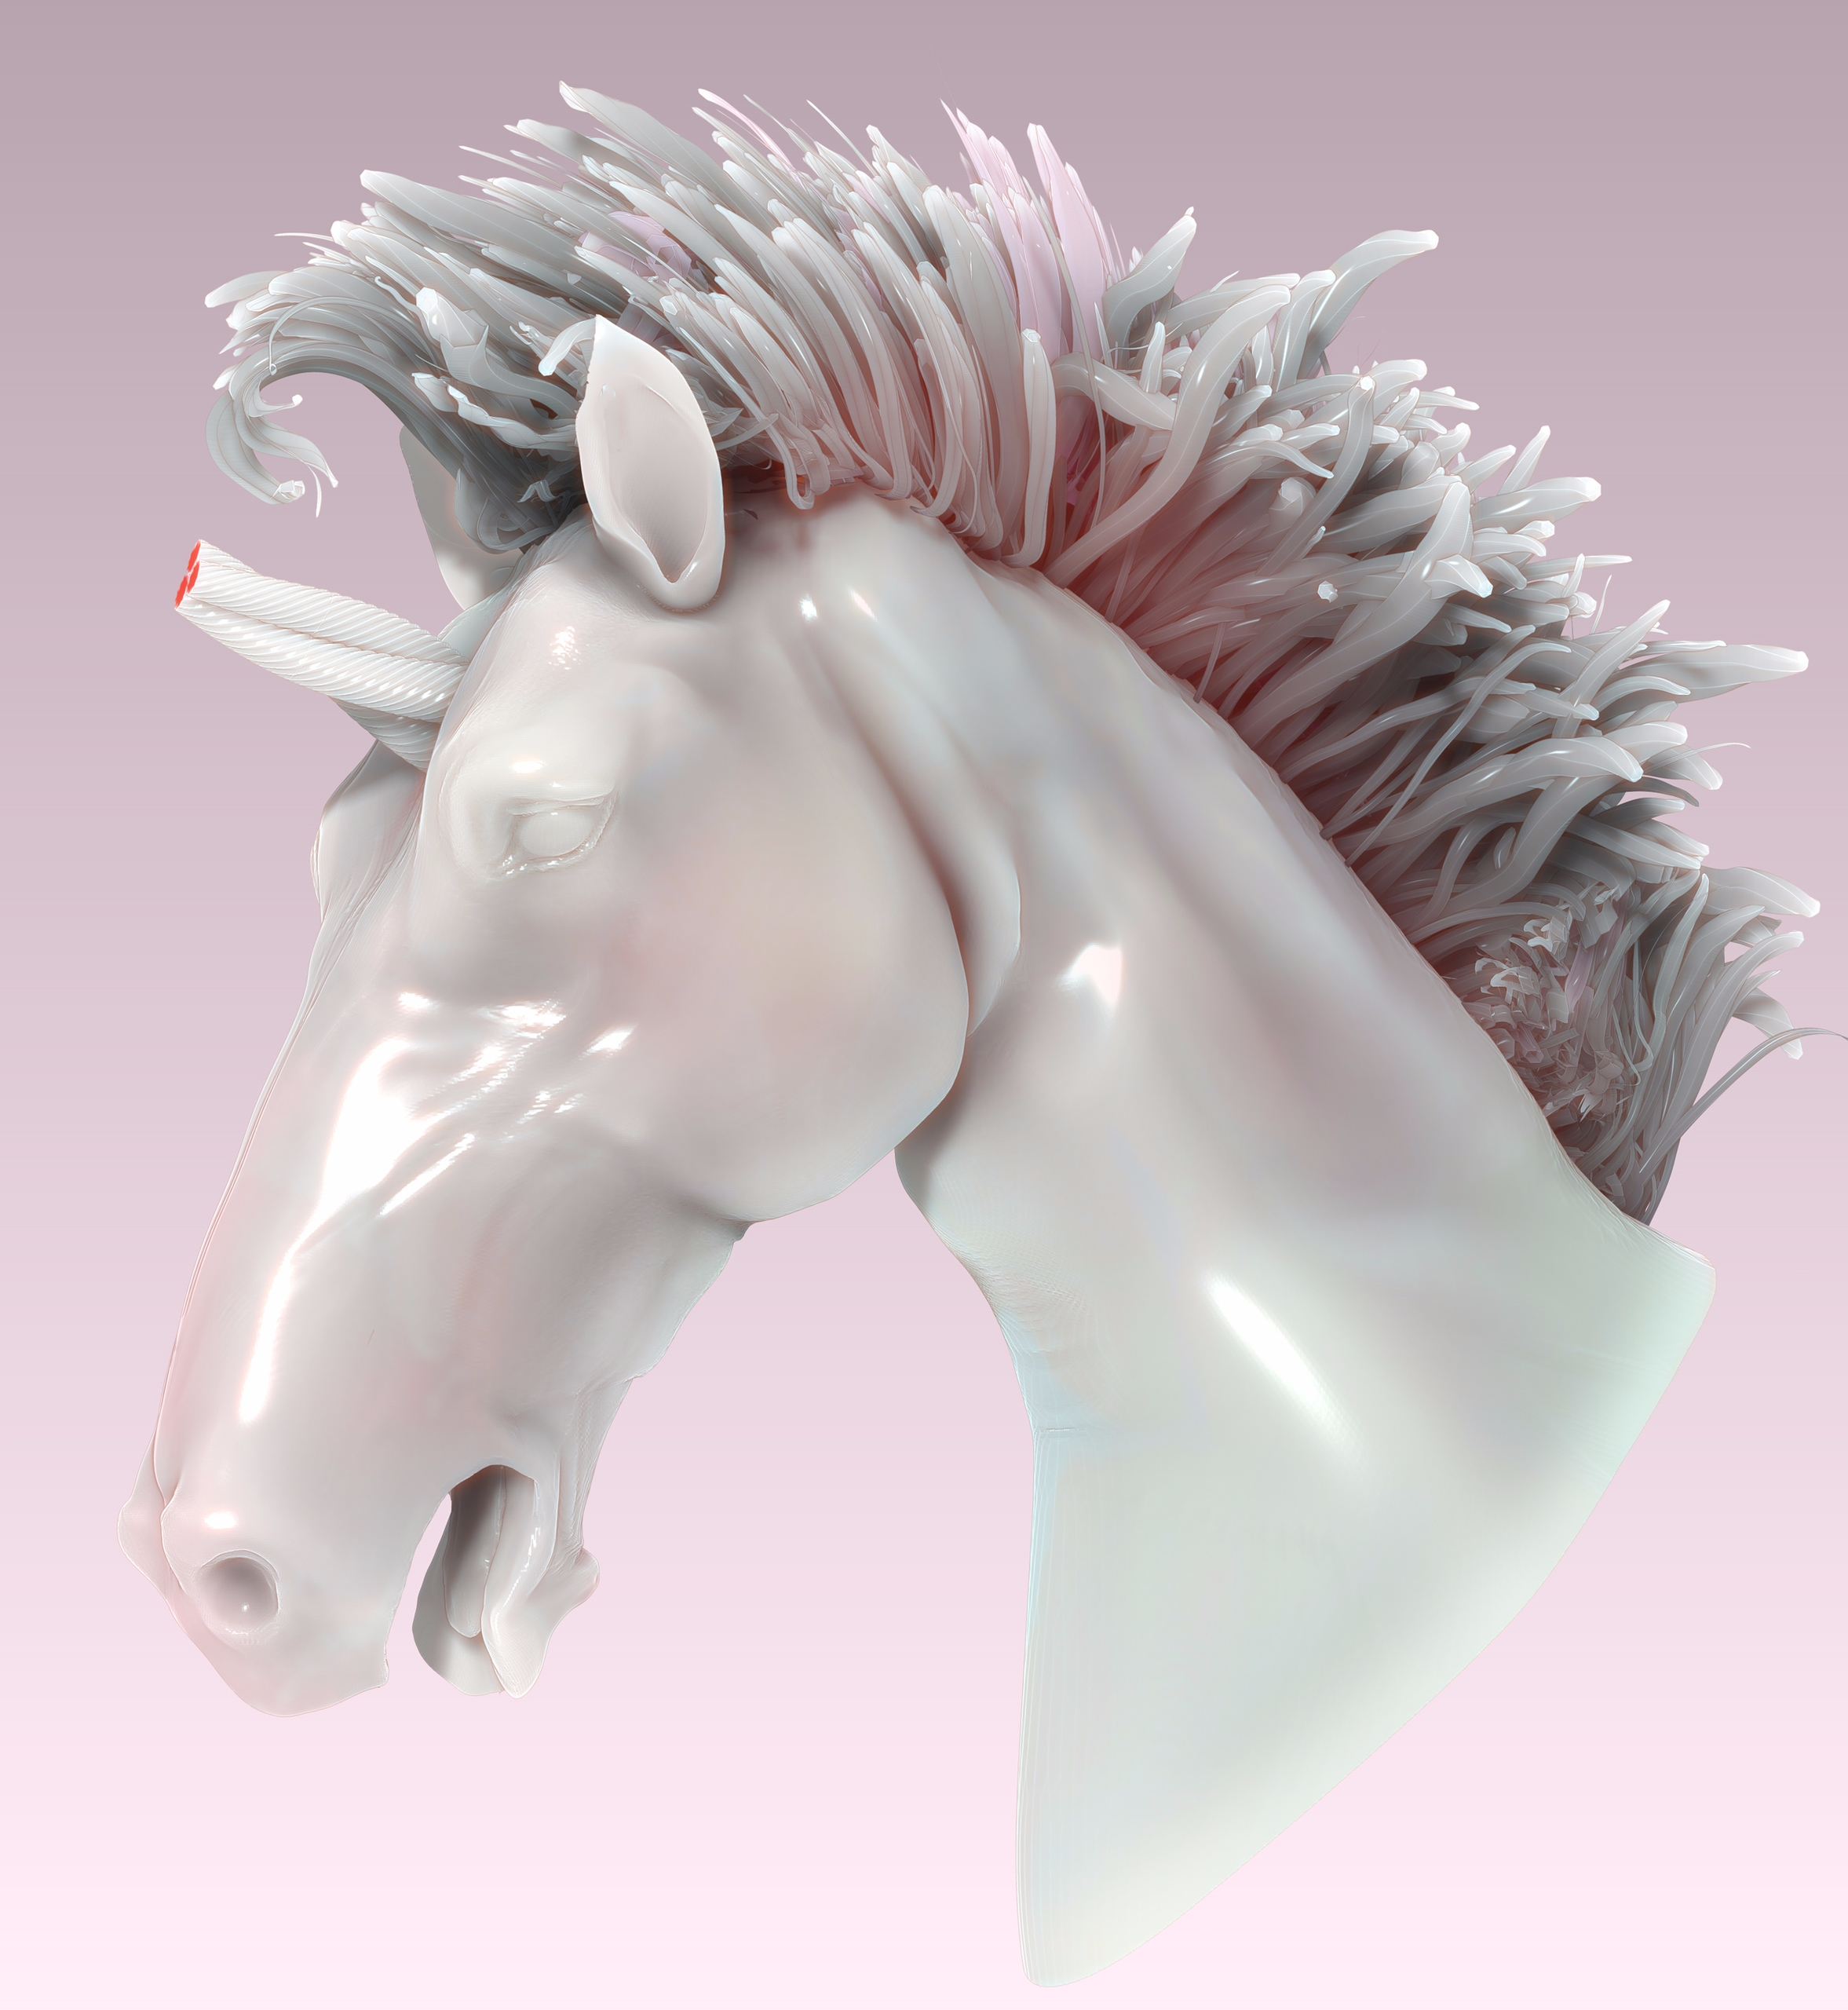 time sculpted pony ¯\_(:unicorn - noises | ello